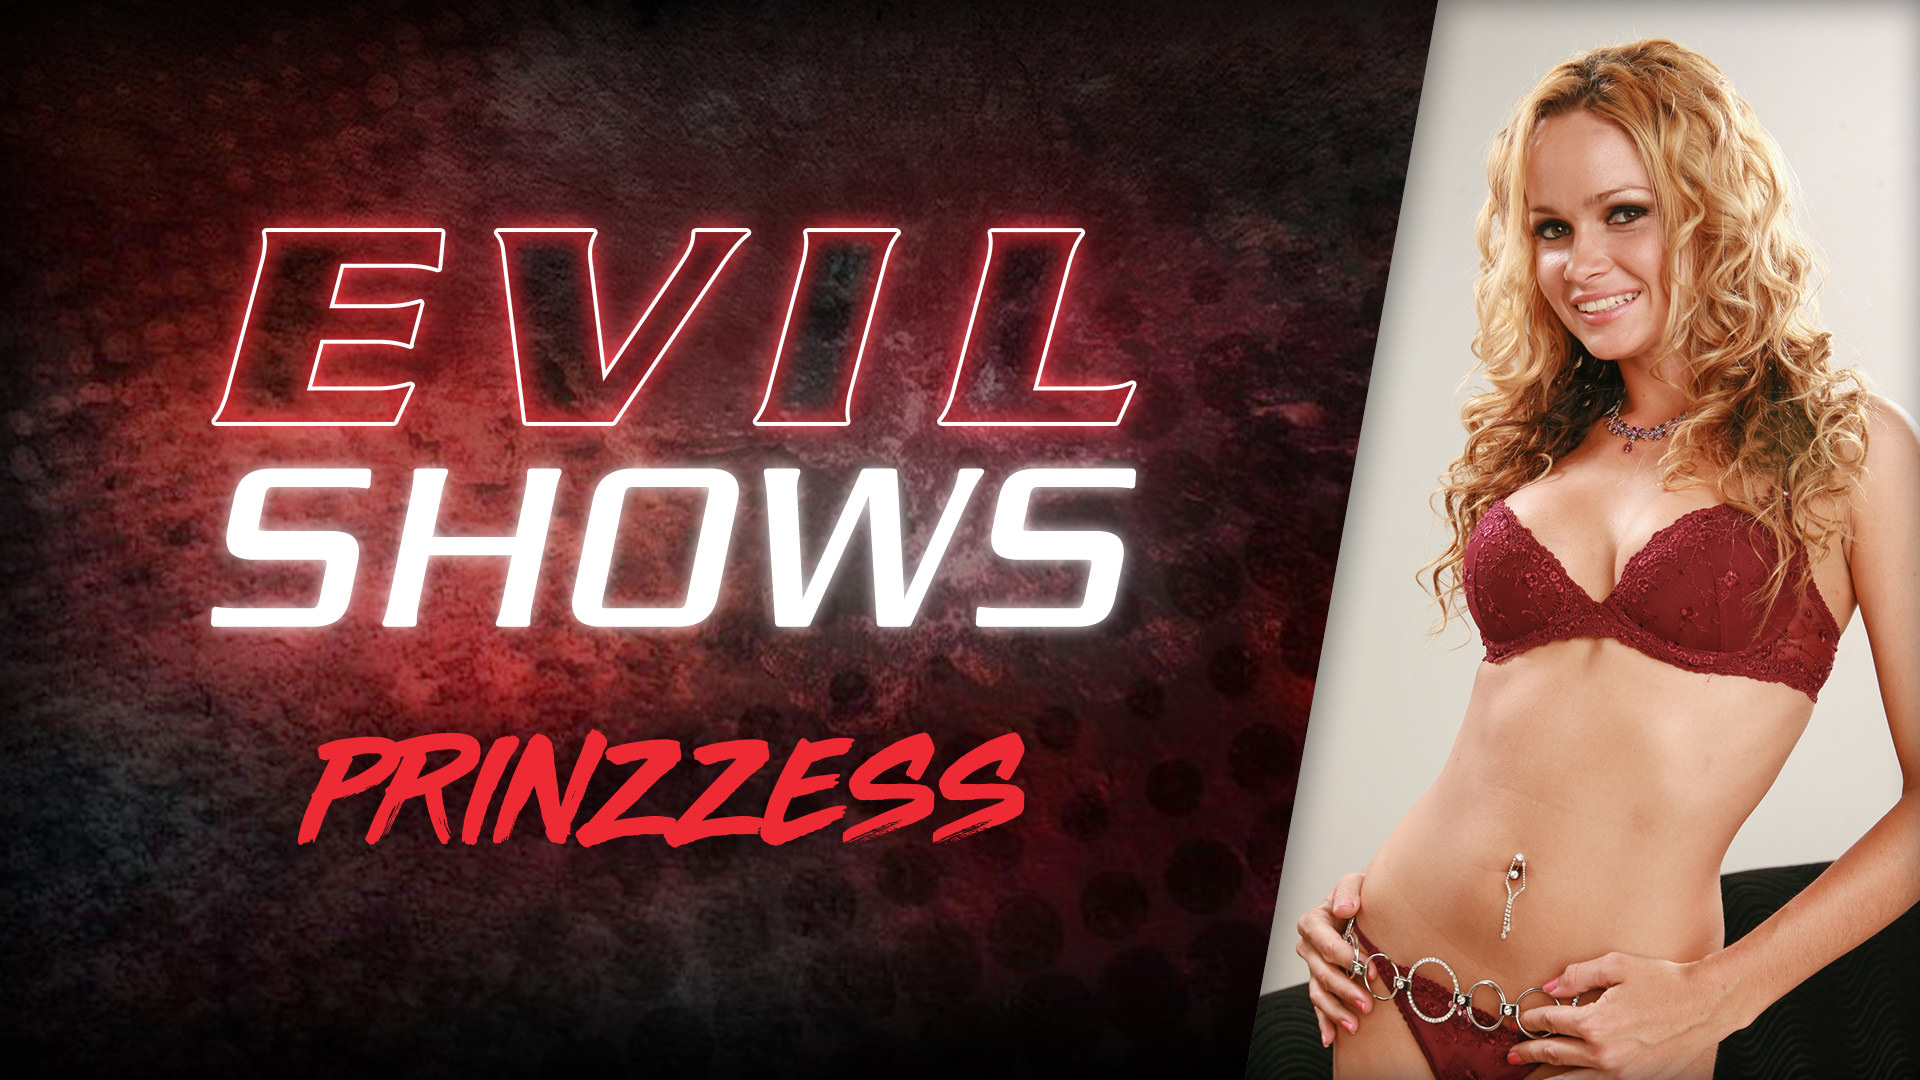 Evil Shows - Prinzzess Scena 1